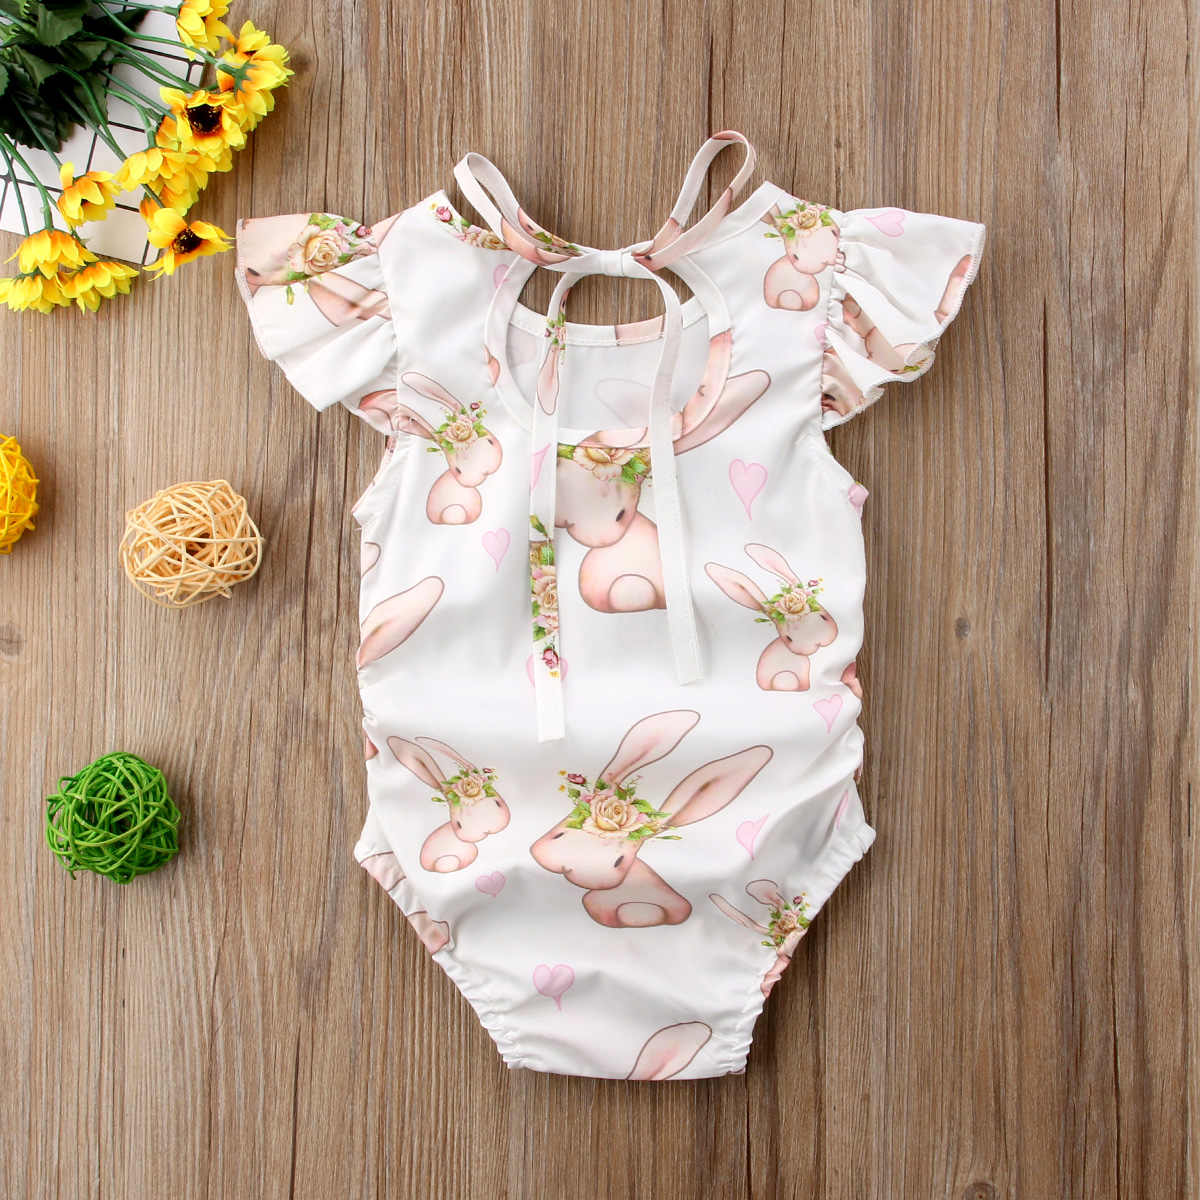 Newborn Baby Girls Easter Bunny Romper Colthing Print Cute Rabbit Sleeveless Jumpsuit Outfits Sunsuit Set 0-24M